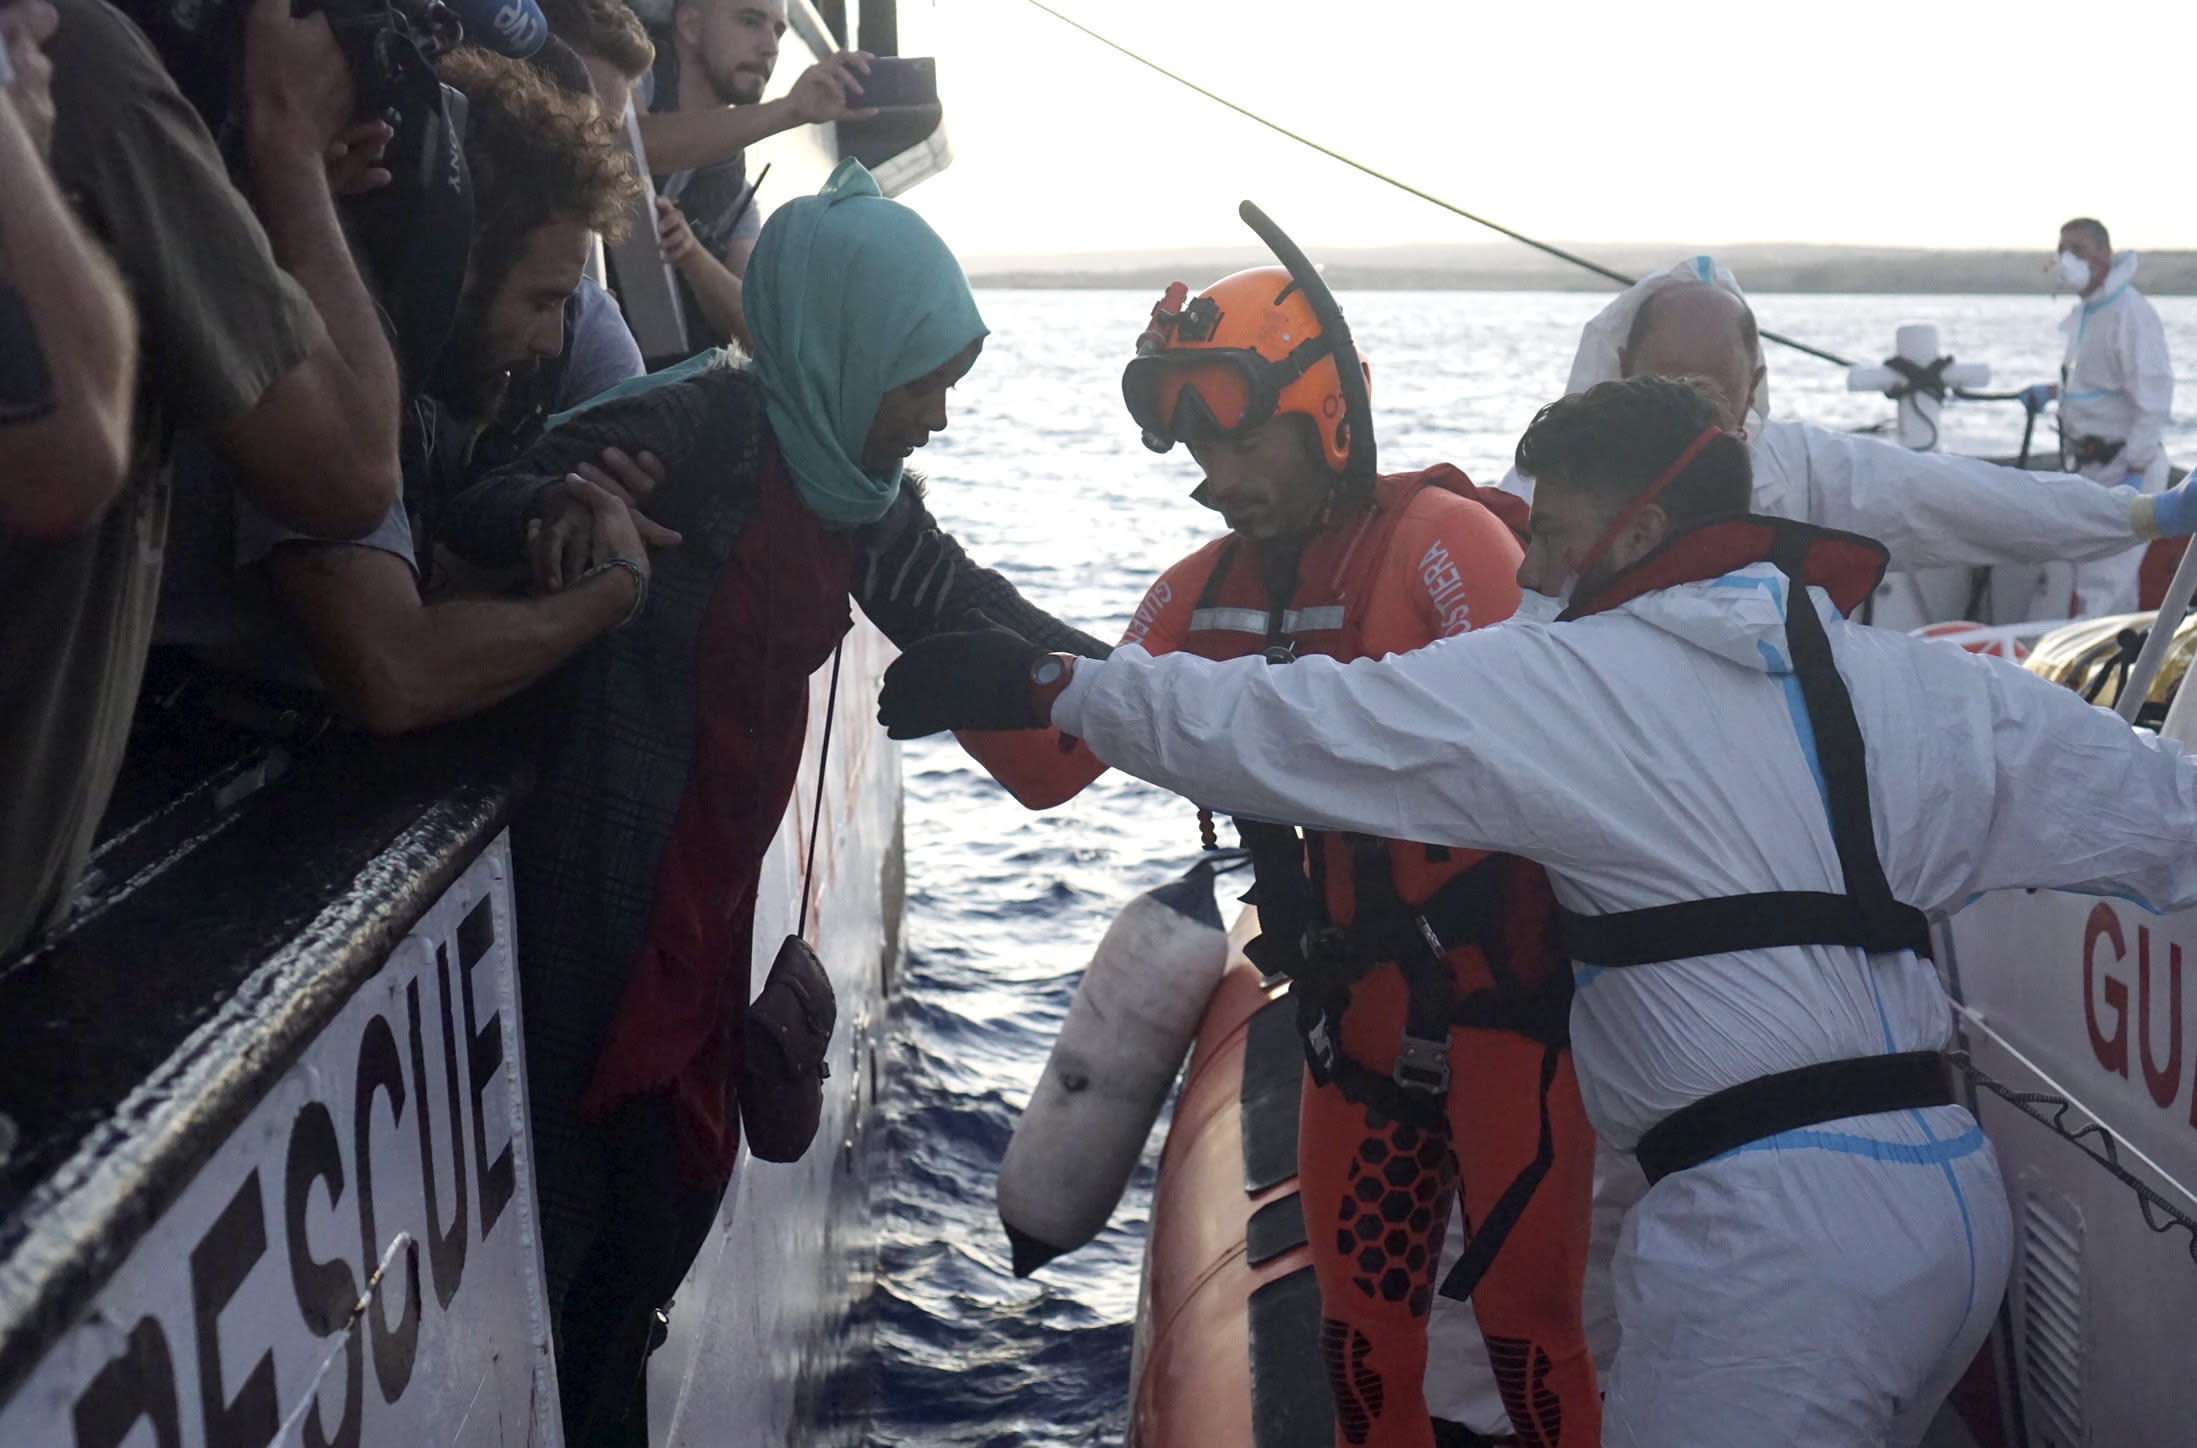 Open Arms rejects offer to dock in Spain, citing 'extreme humanitarian emergency'